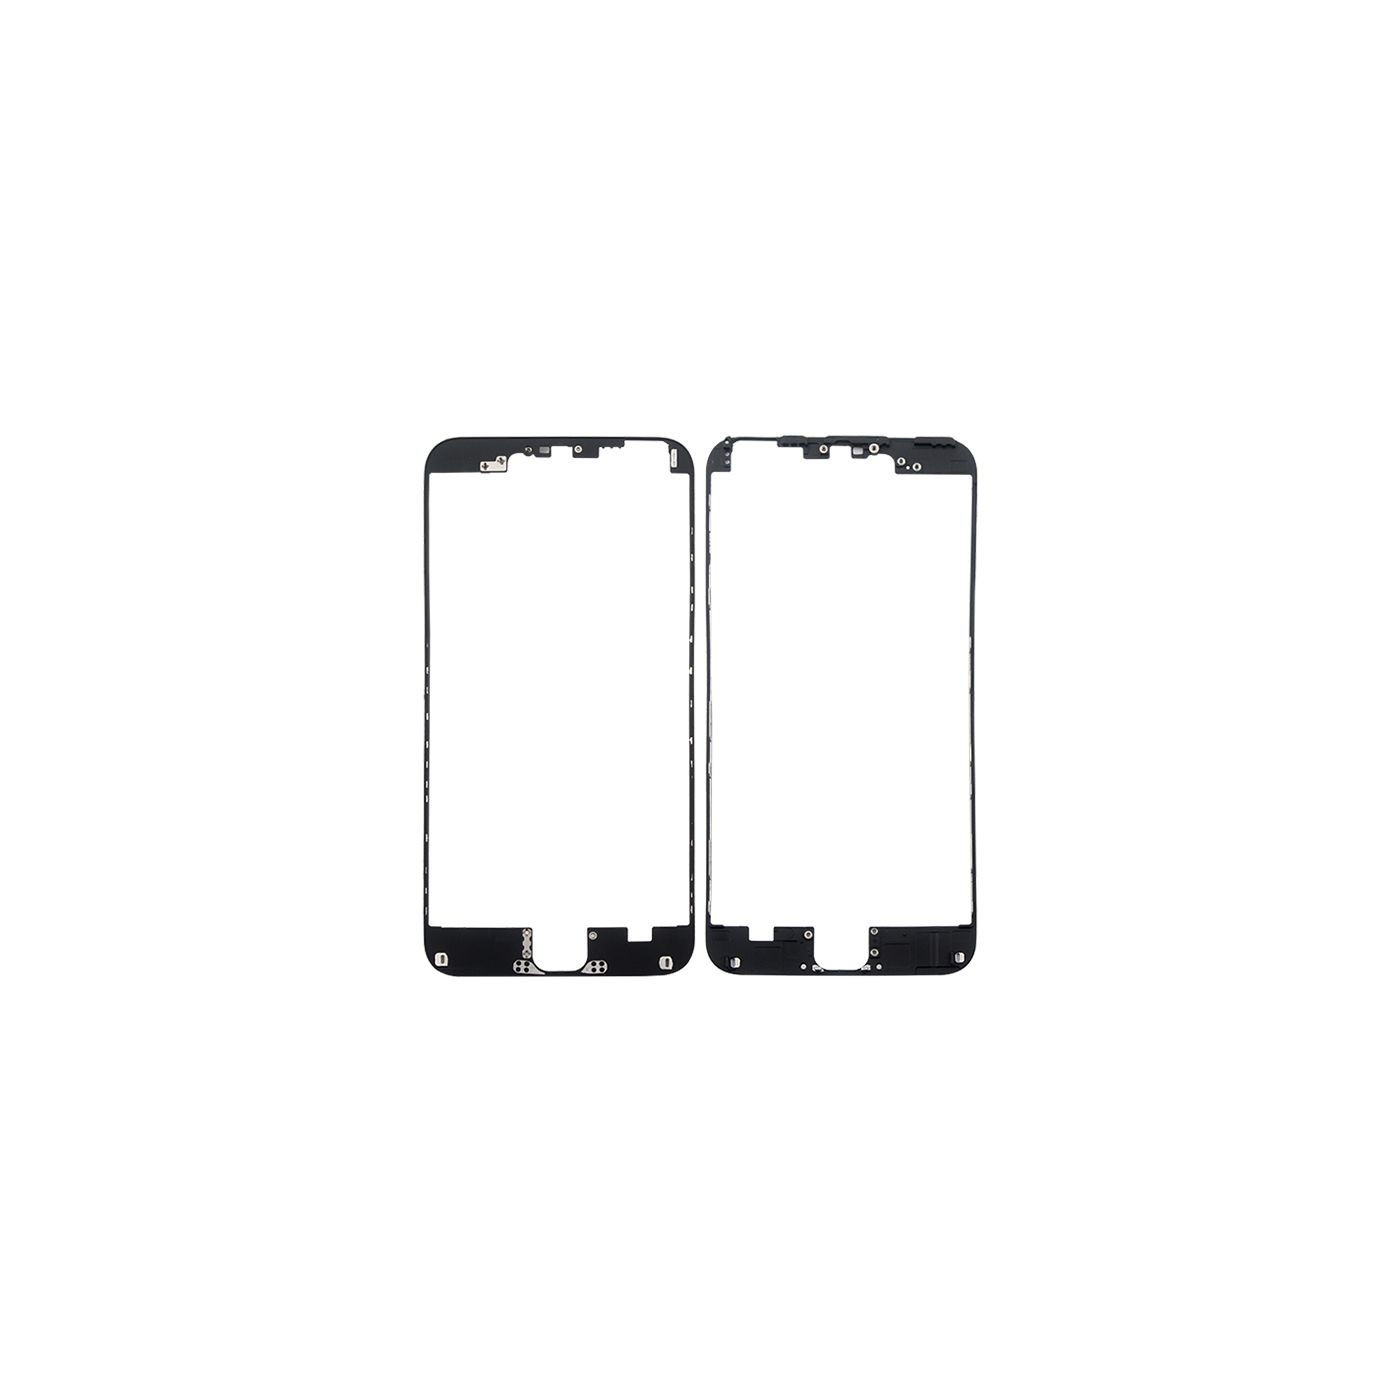 Cornice digitizer frame per iphone 6 plus nero con adesivo